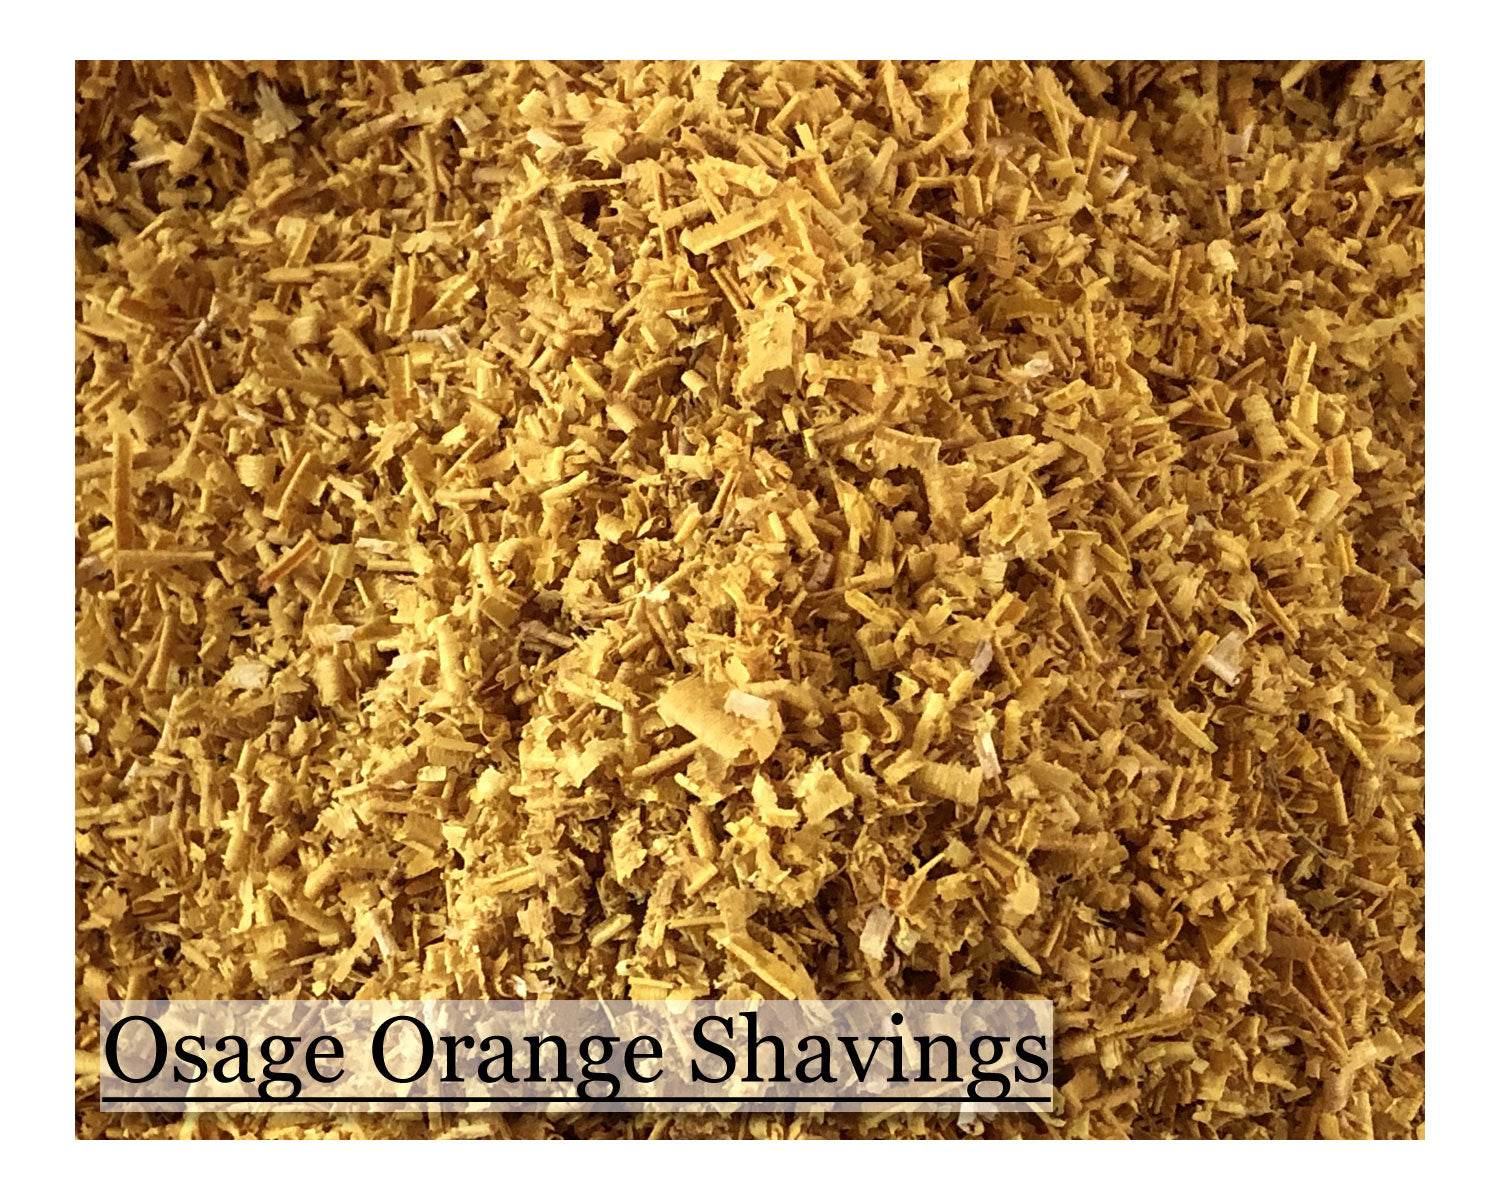 Osage Orange Shavings - 2oz (57g)